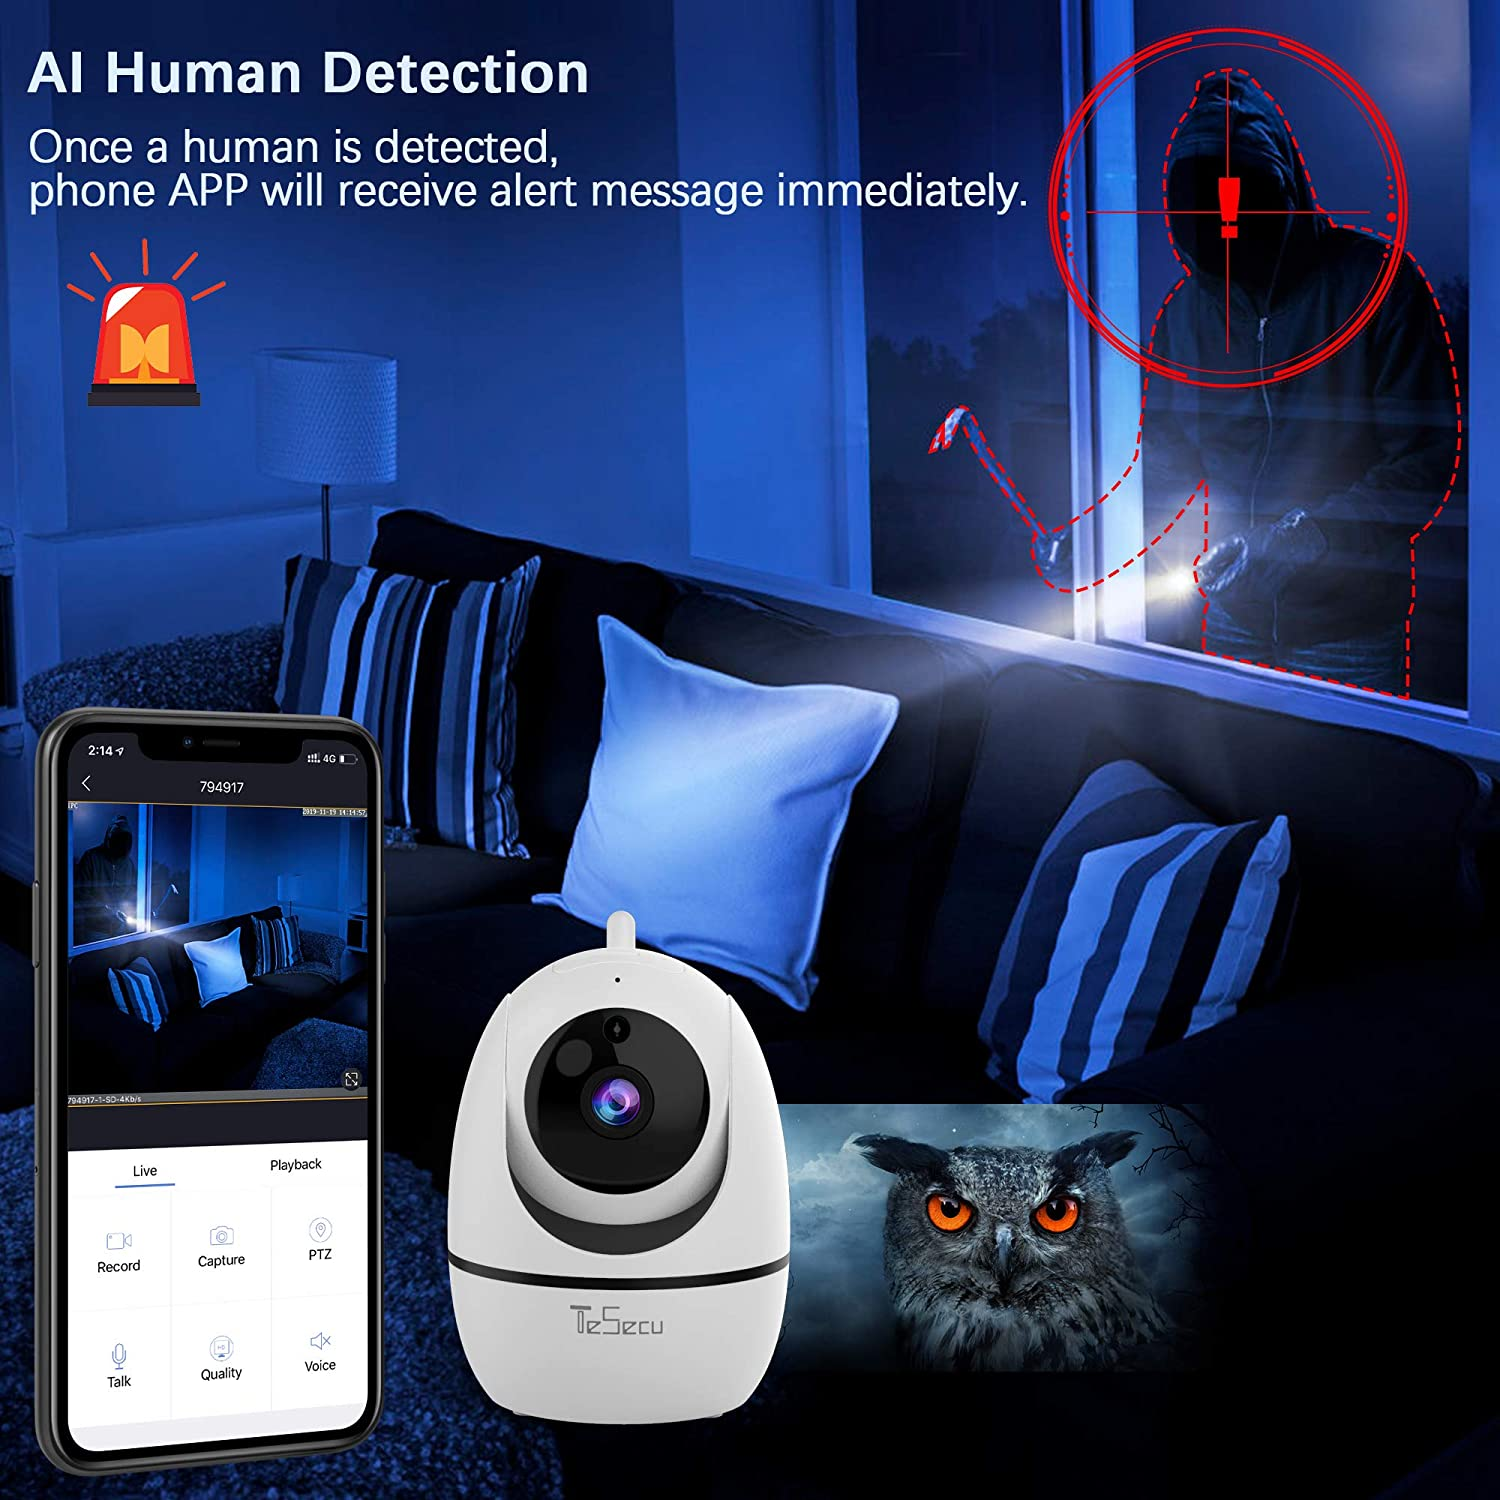 Security Camera, Tesecu 1080P WiFi Dog Pet Camera with AI Human Detection, 2-Way Audio, Night Vision, 2.4Ghz Wireless Indoor Home Camera Baby Monitor Remote Surveillance, Android, iOS App